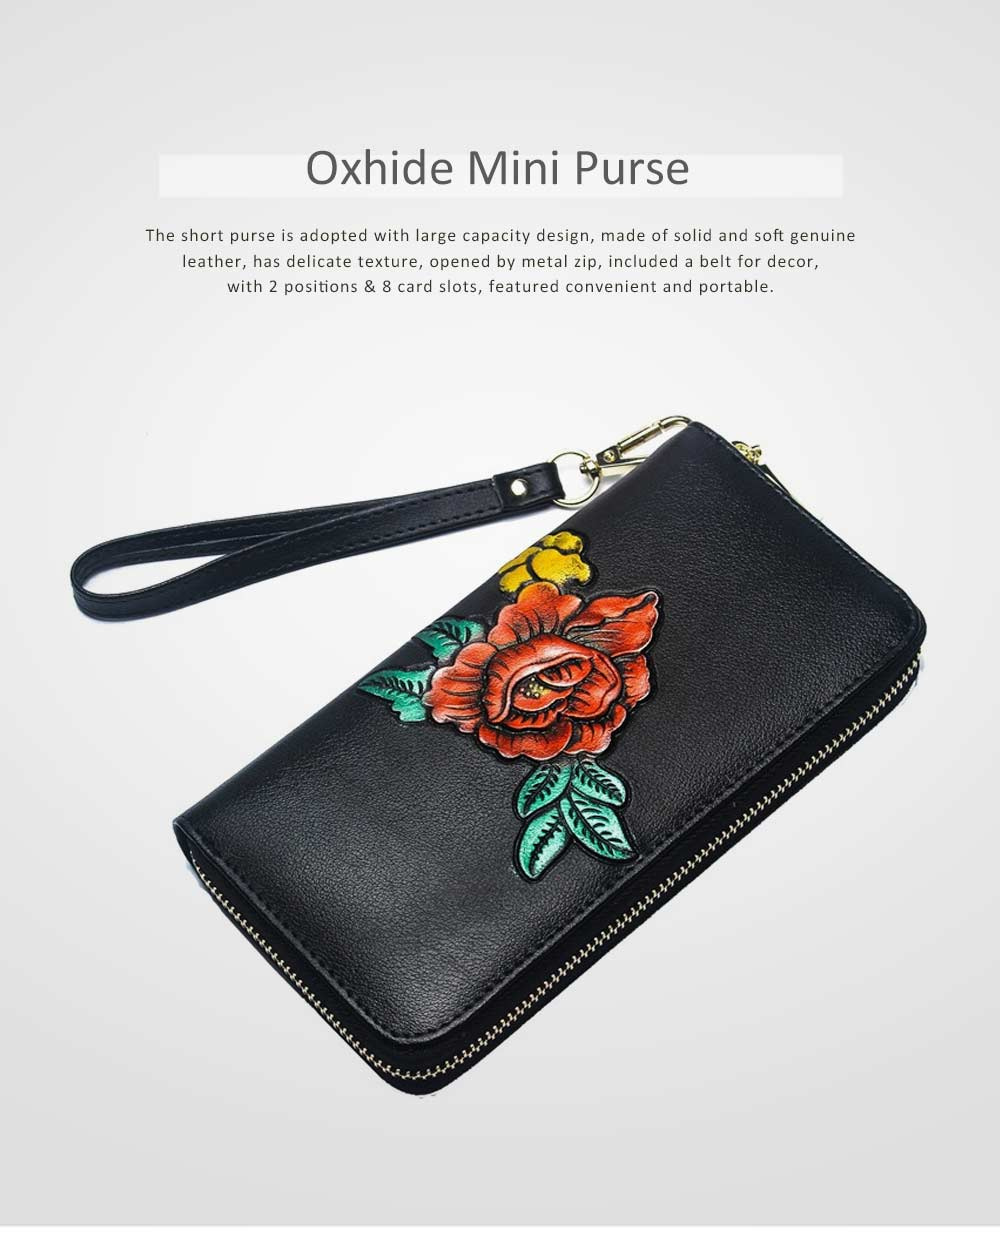 Soft Genuine Leather Purse with Multiple Card Slots, Mini Clutch Zipper Purse Oxhide Buckle Short Clutch Card Holder for Women 0